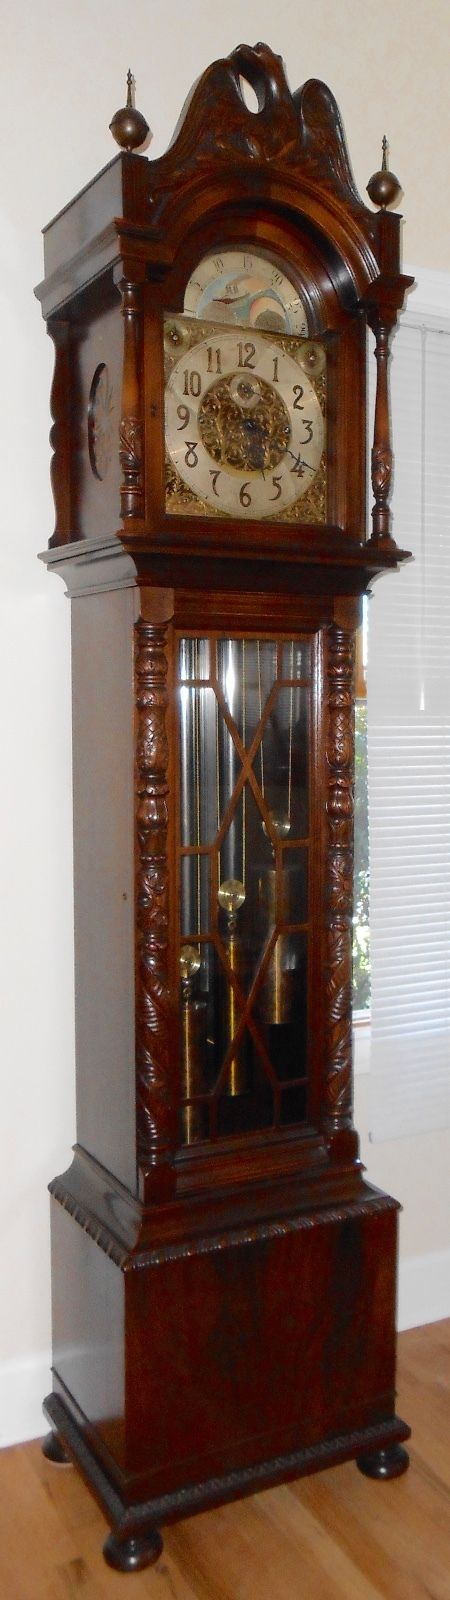 Colonial Tall Case Clock with Winterhalder & Hofmeier Movement Westminster Chime